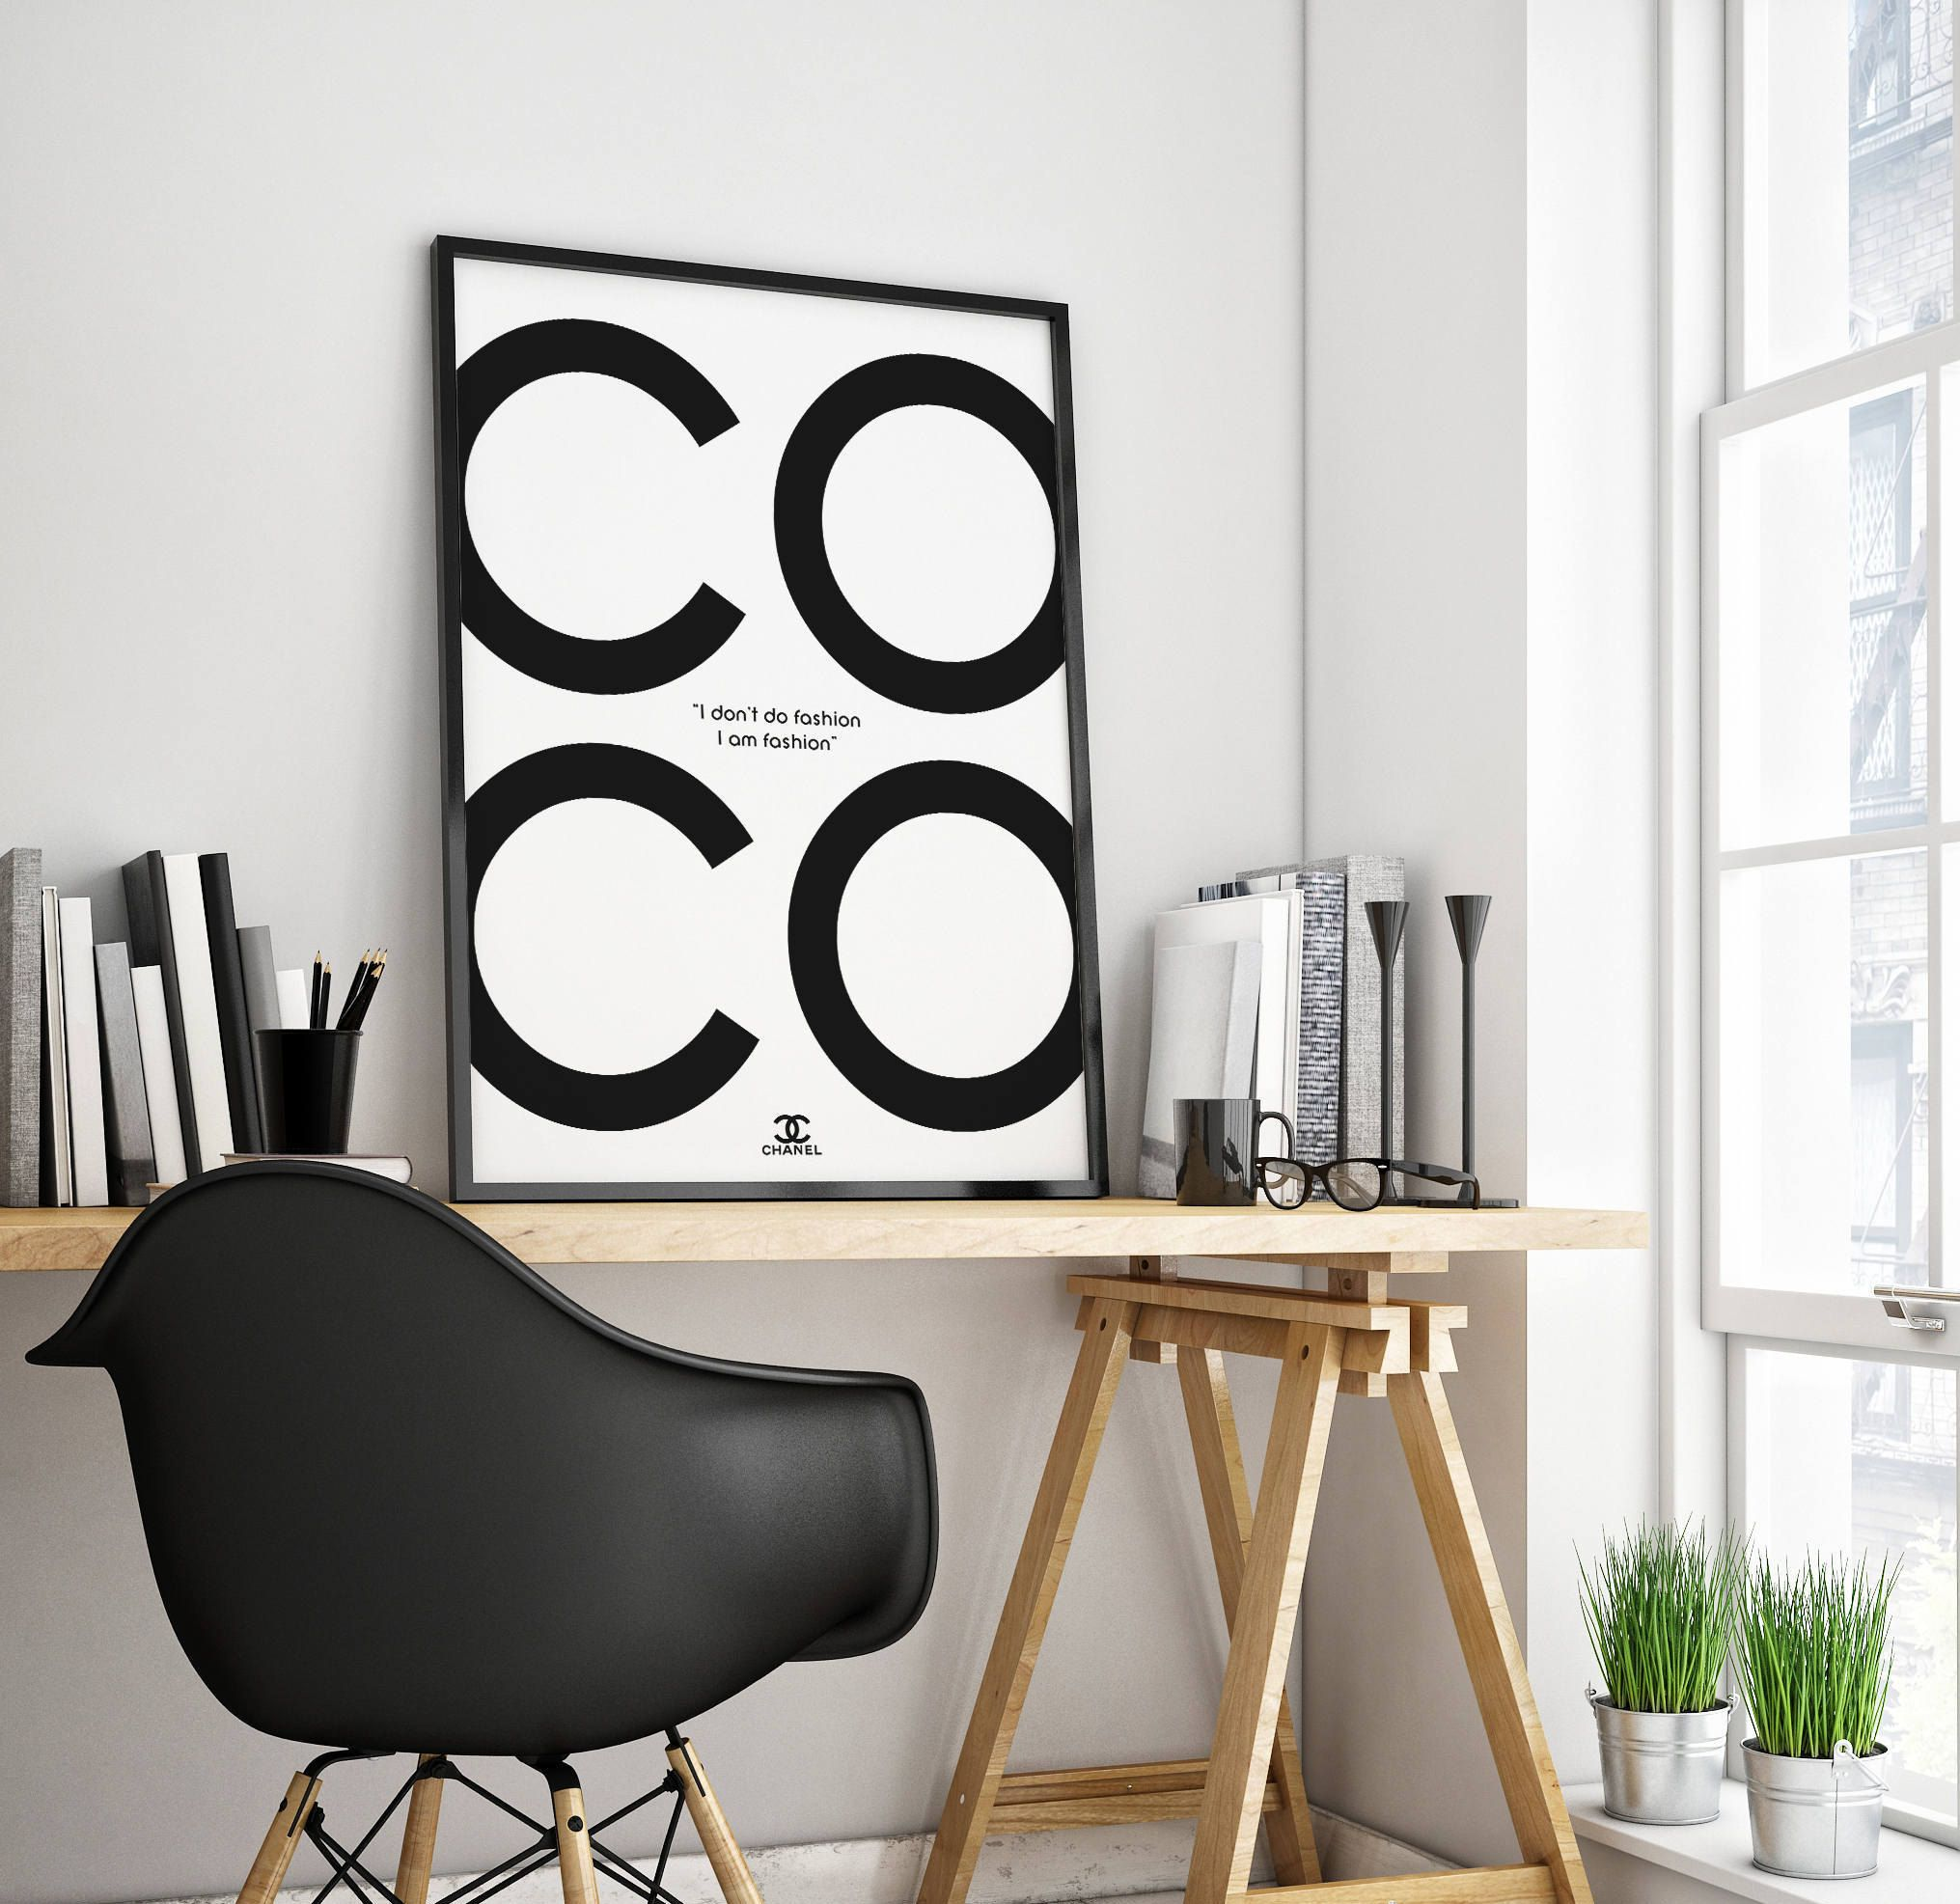 Chanel, Chanel Poster, Chanel Print, Coco Chanel Print, Chanel Wall